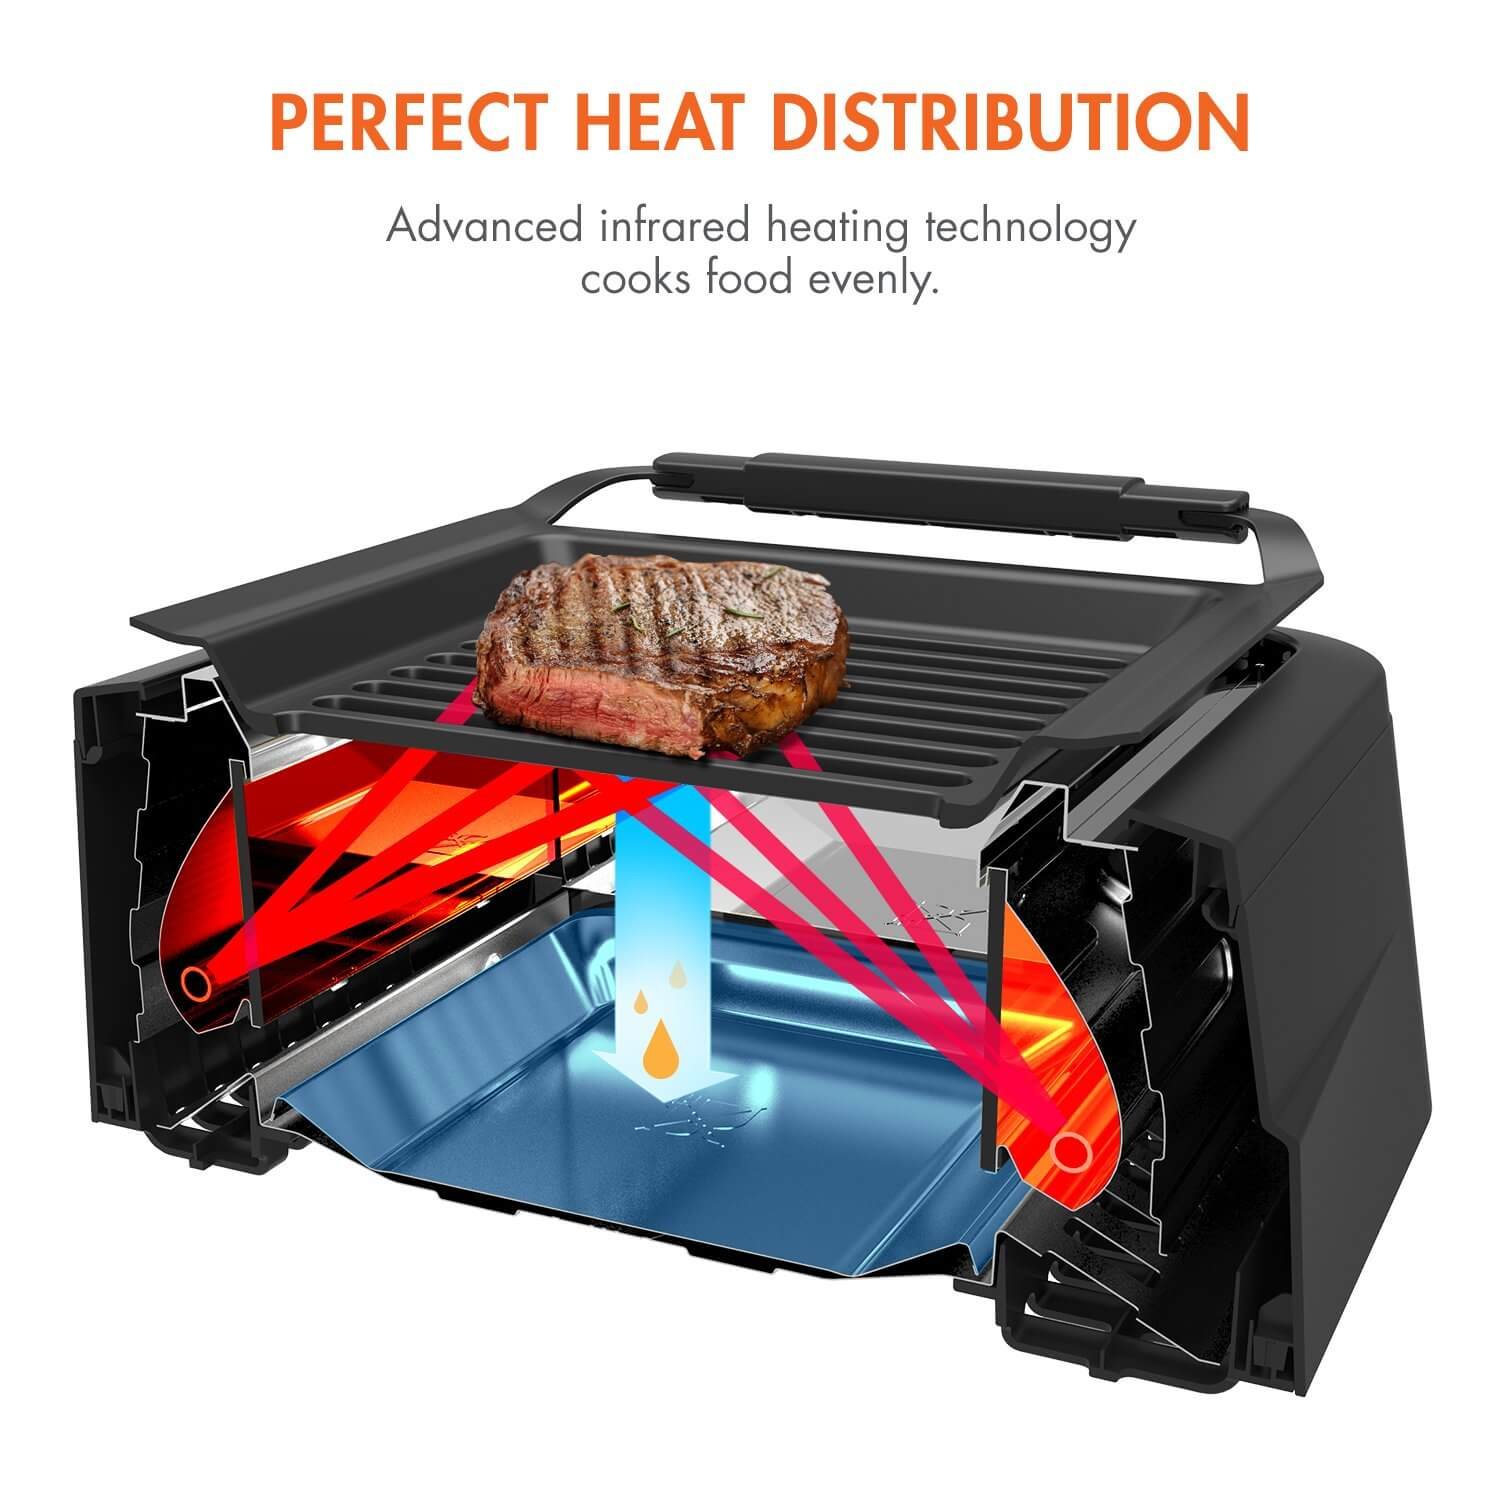 Tenergy Redigrill Smoke-Less Infrared Grill, countertop grill, electric grill indoor, electric grills